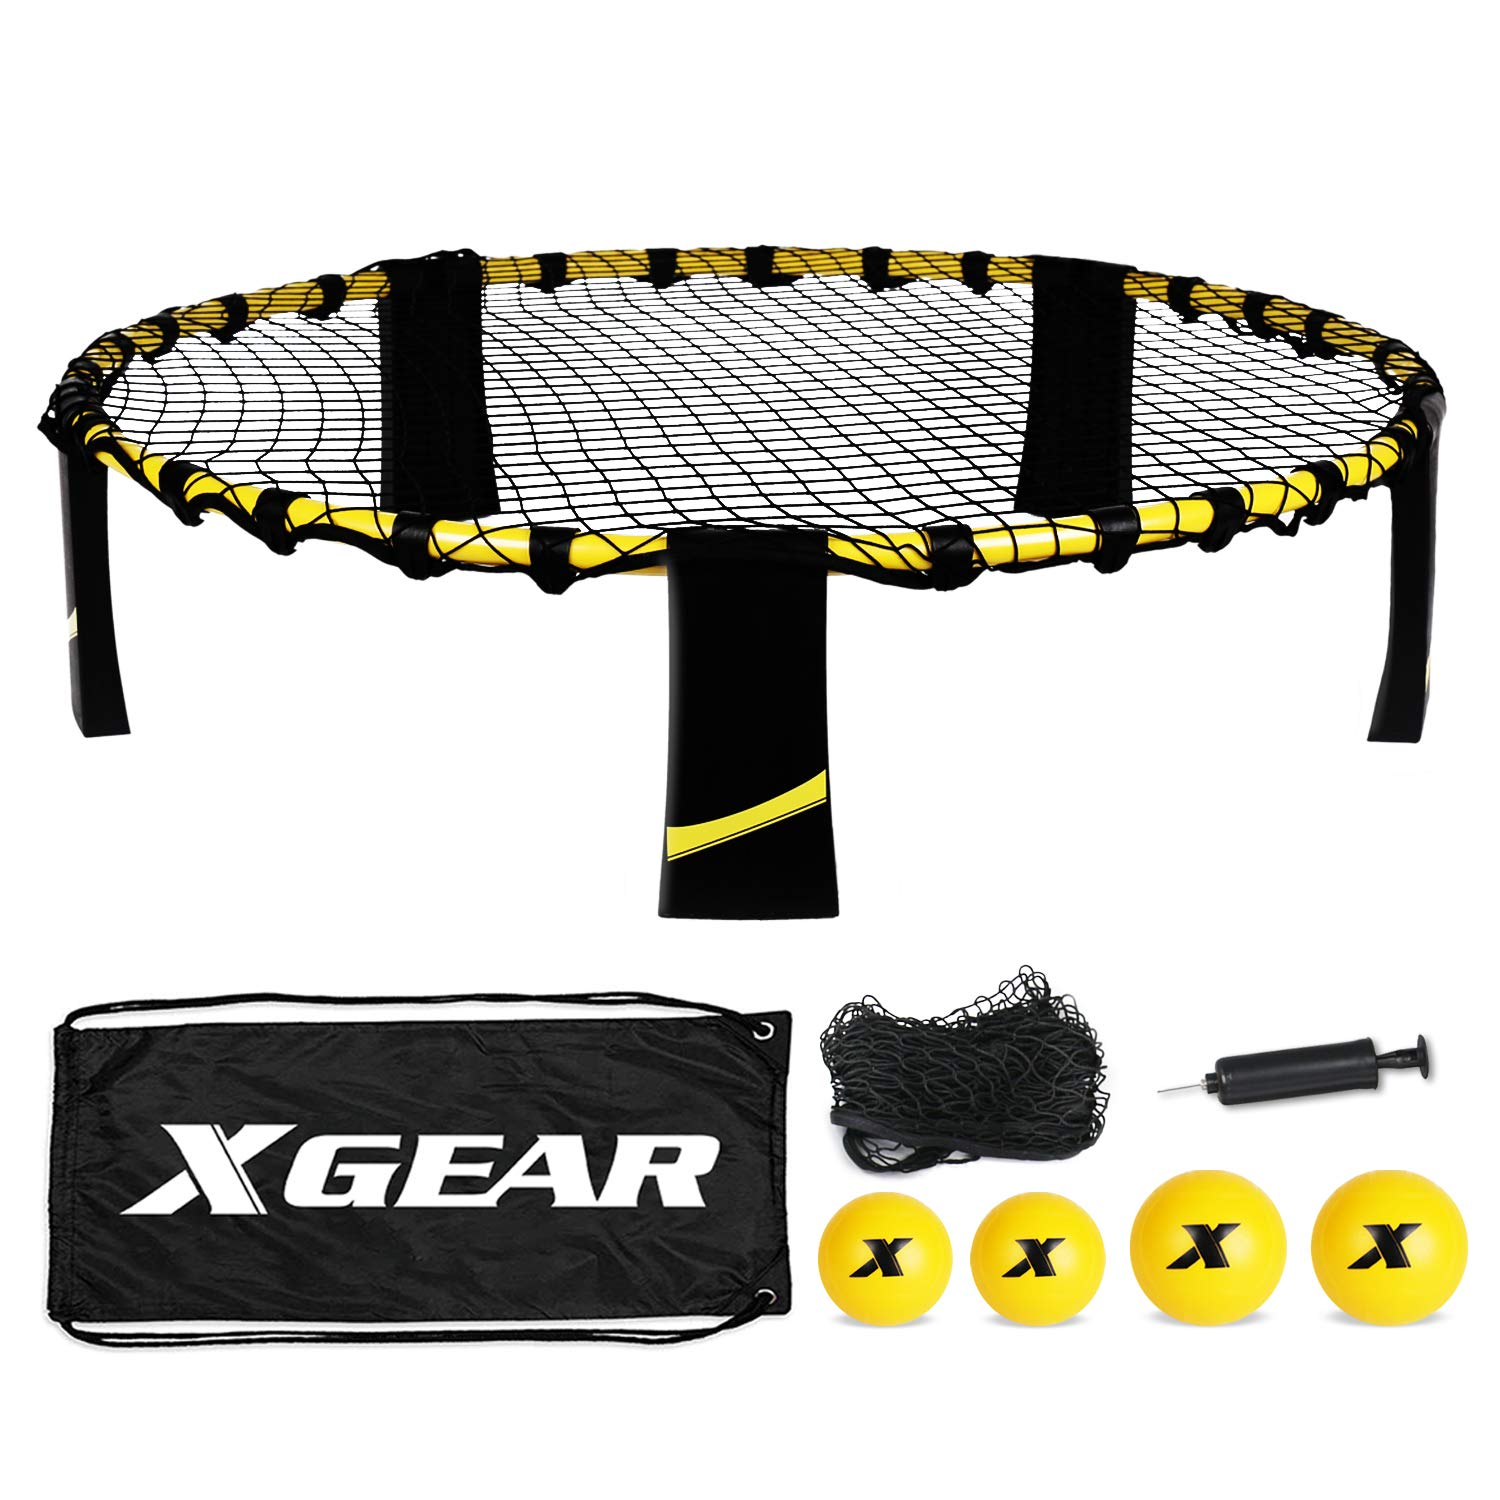 XGEAR Volleyball Spike Game Set, Bouncing Balls Yard Game, Indoor Outdoor Toy Includes Upgraded Round Net, Unique Frame, Sturdy Legs, 4 Balls (2pcs 3.5''/2pcs 4.7''), 1 Pump,1 Carry Bag- Fun for All by XGEAR